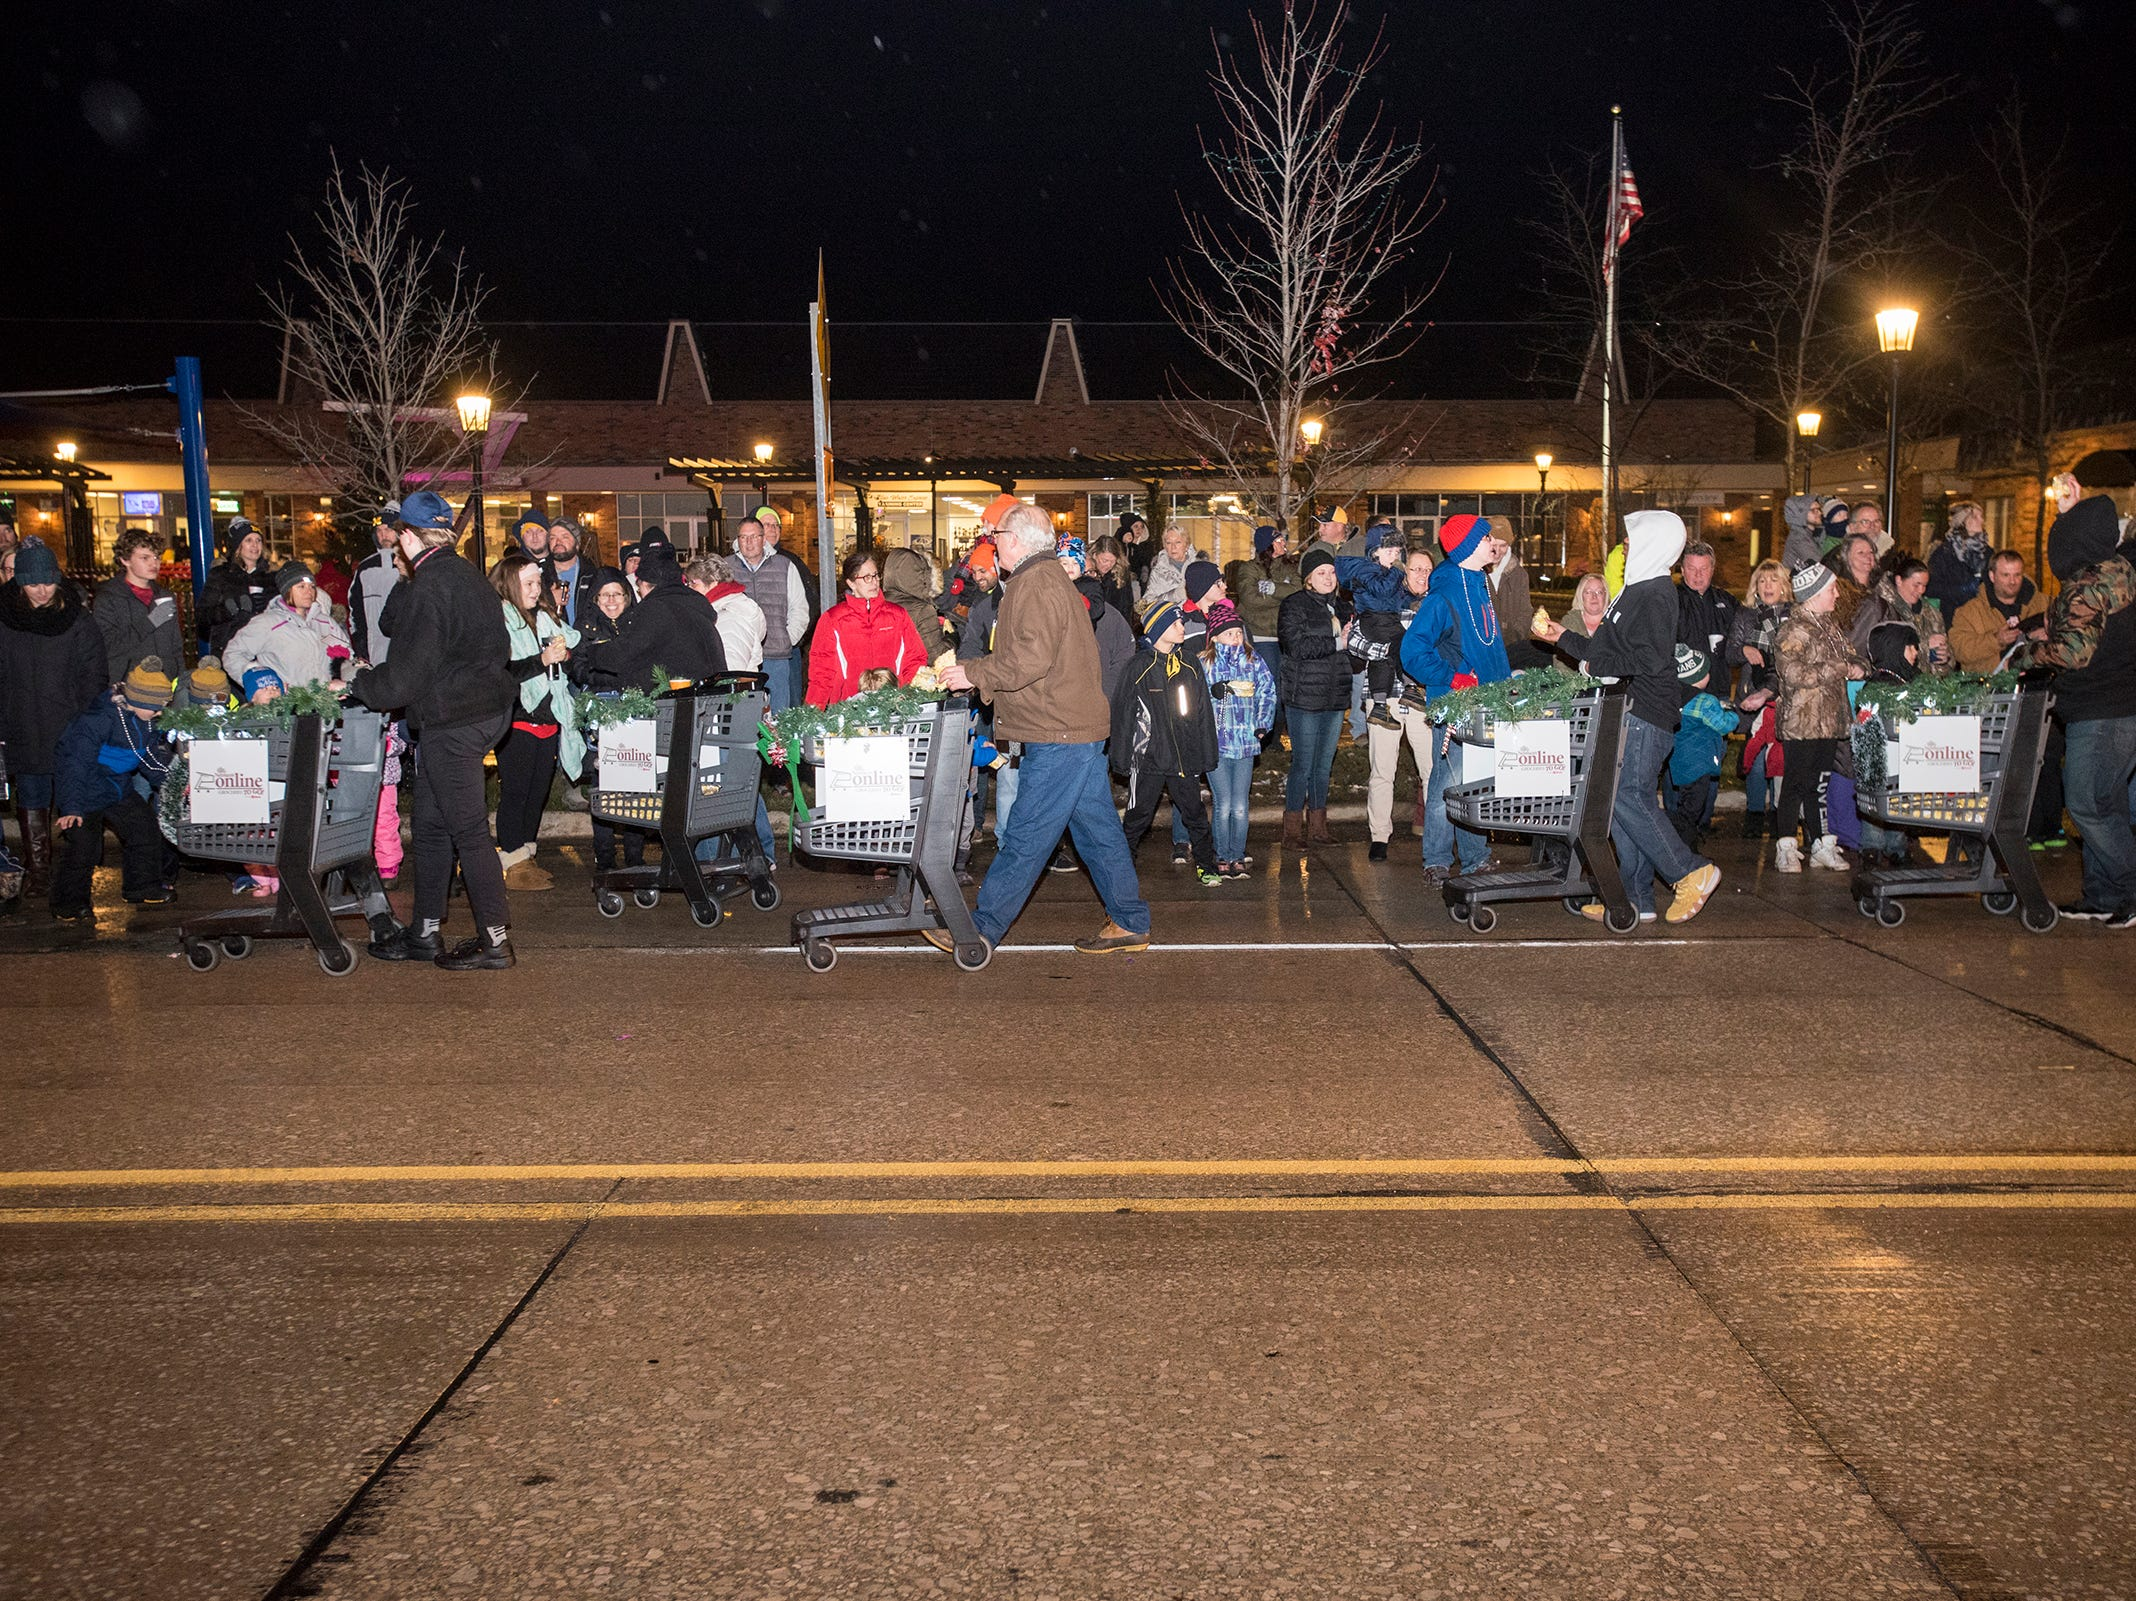 People push illuminated shopping carts down Riverside Avenue Friday, Nov. 16, 2018 during the St. Clair Lighted Santa Parade.